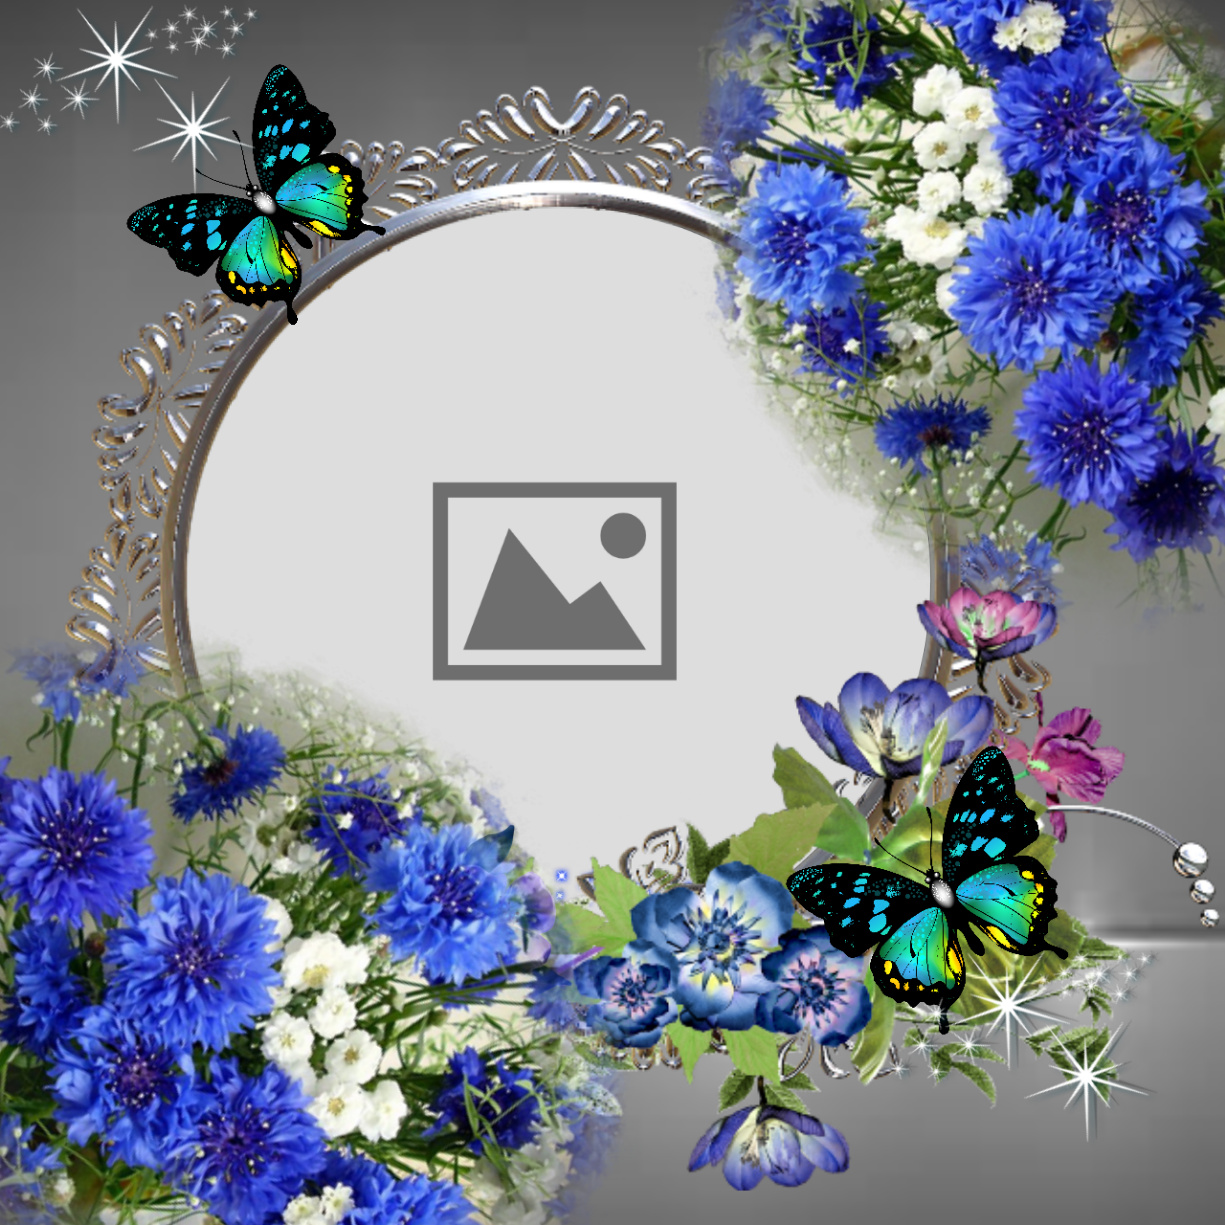 Imikimi Zo - Picture Frames - Round frame with blue flowers - norafg62